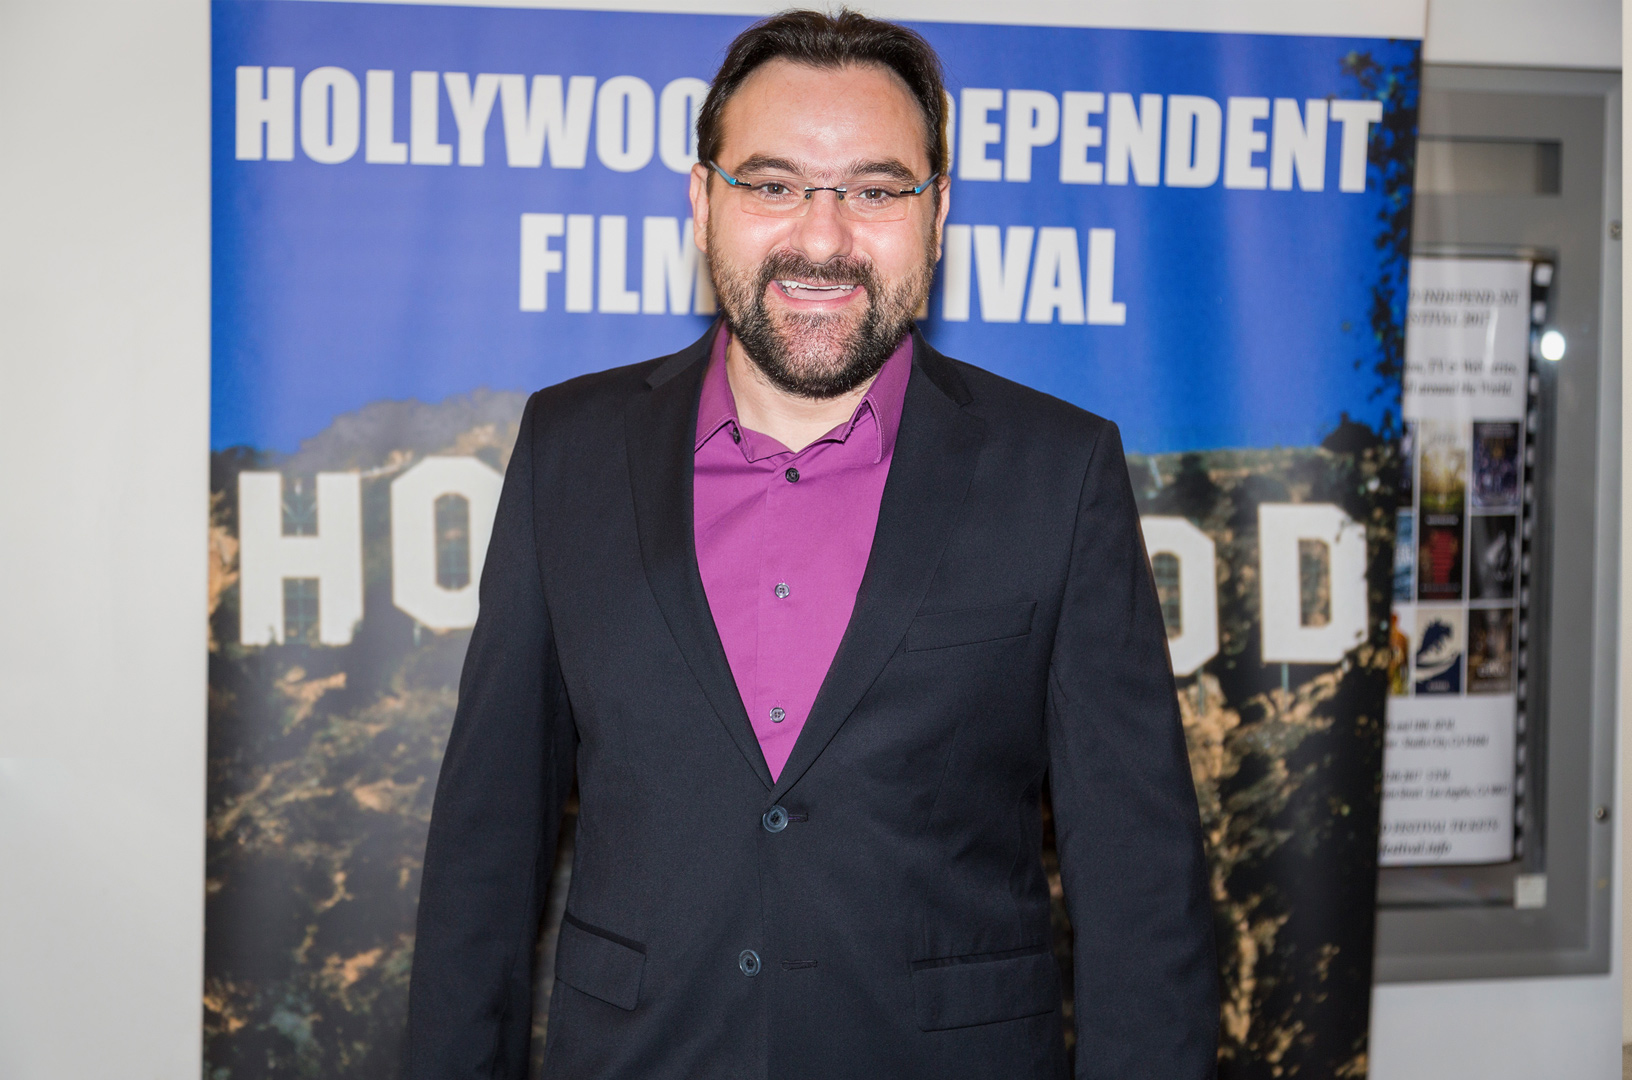 Hollywood Intl Film Festival